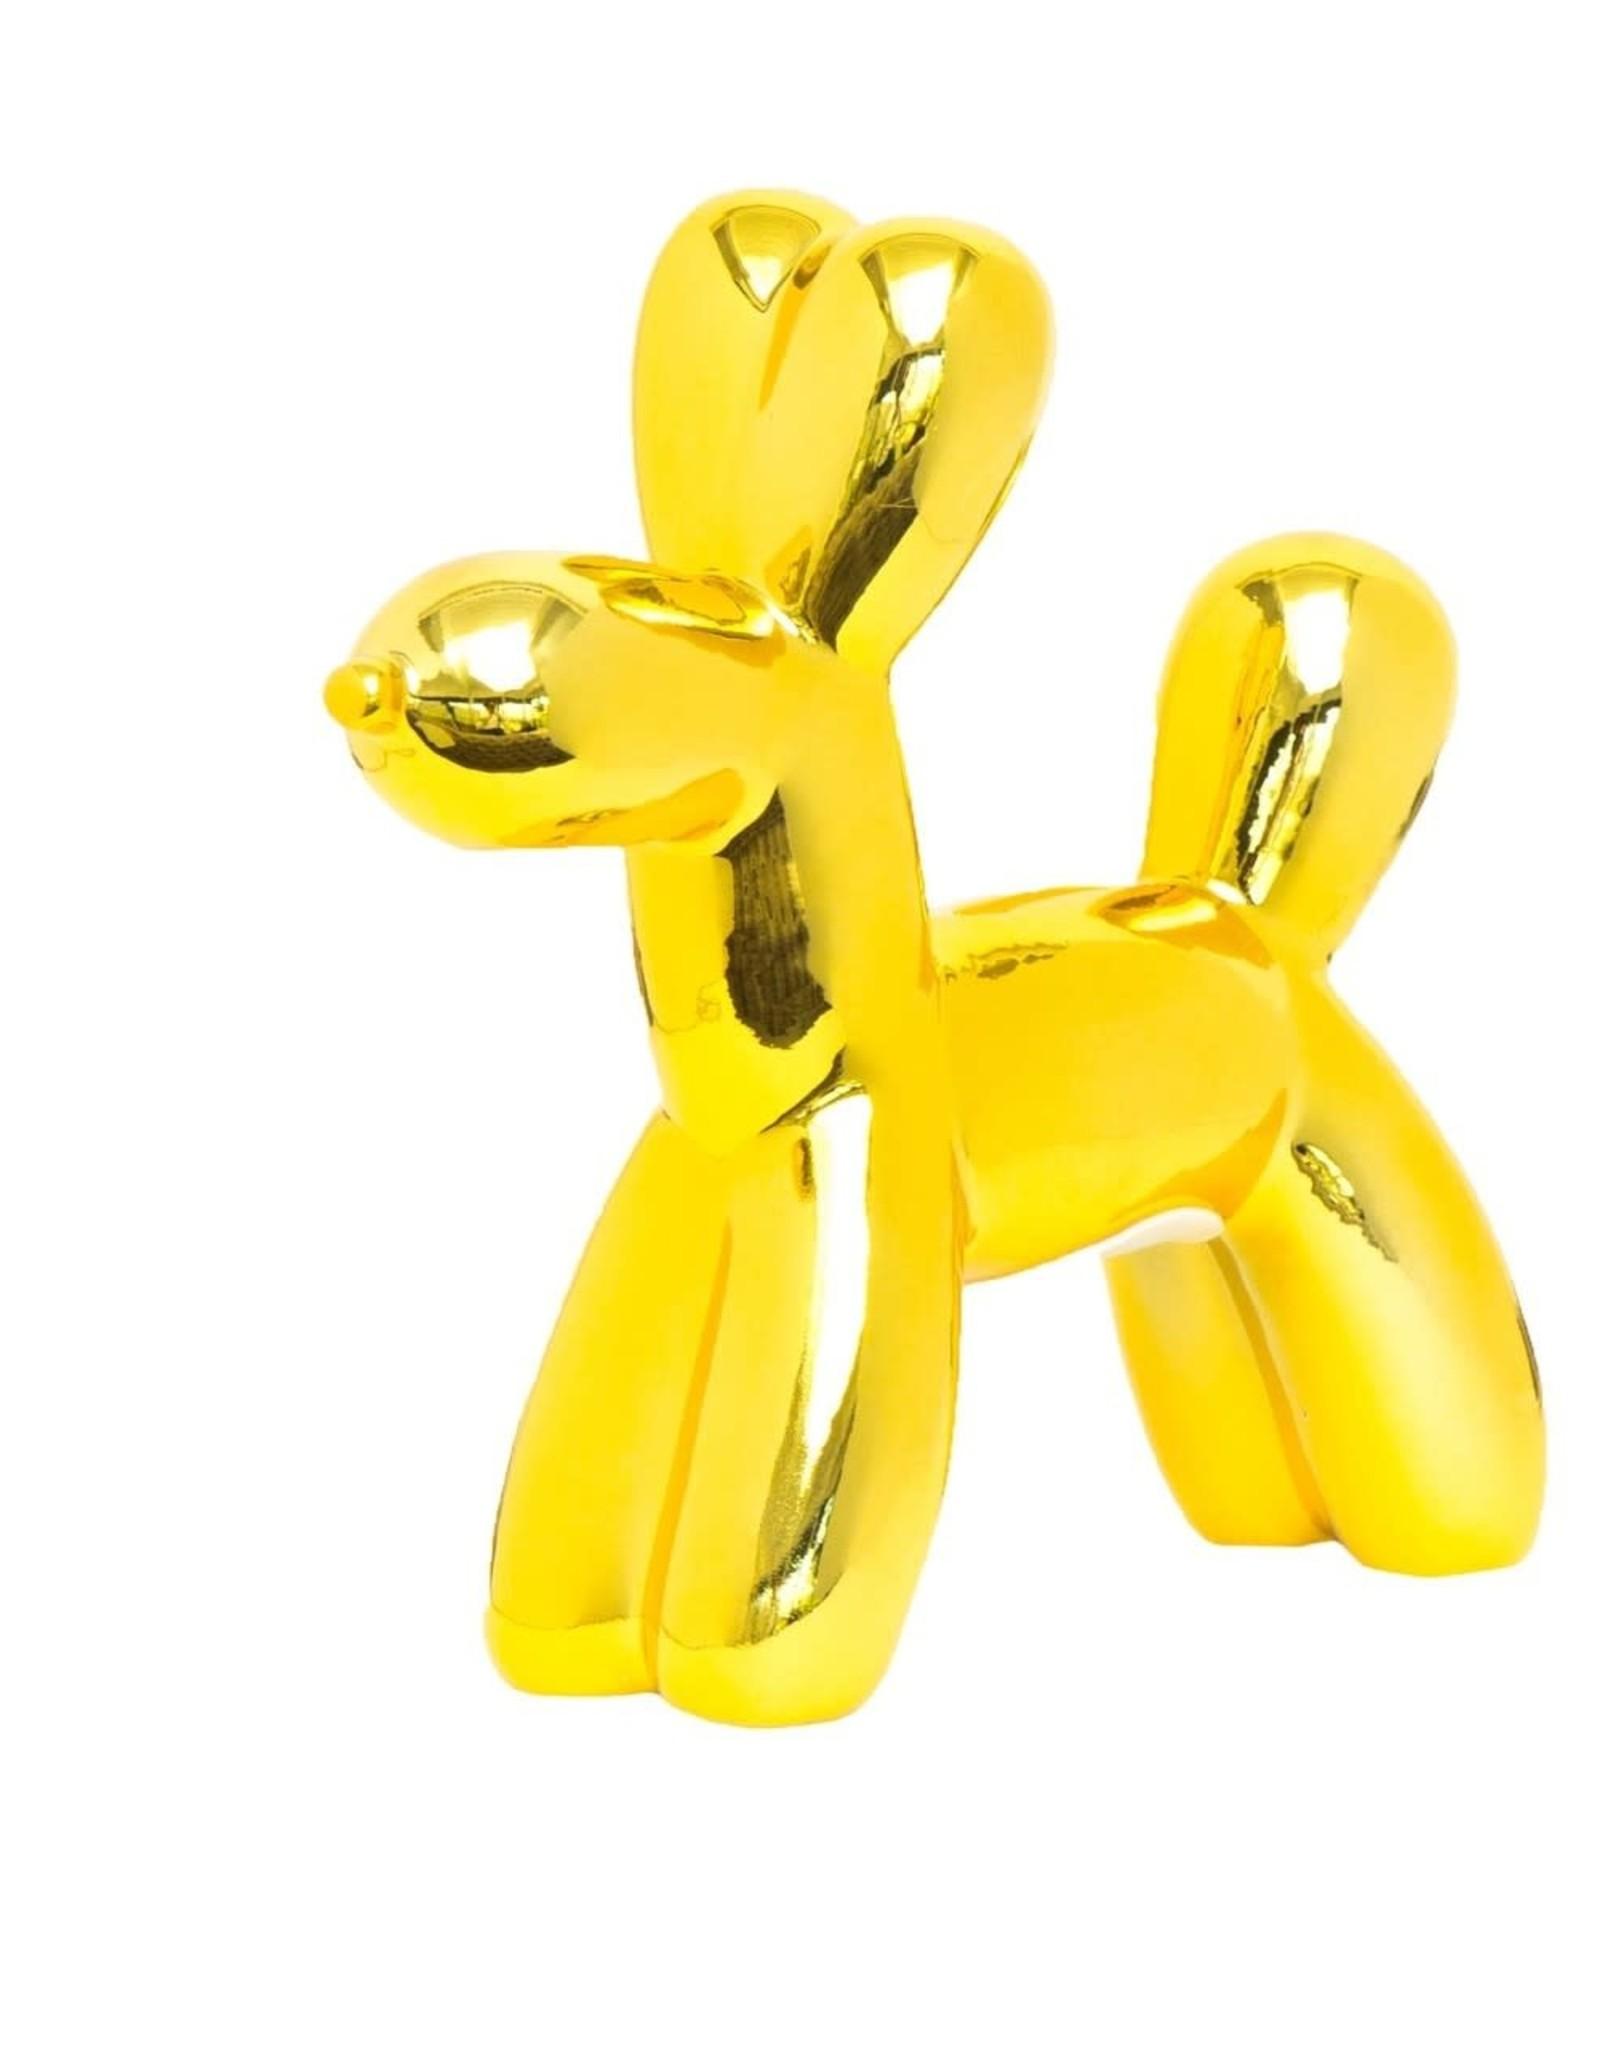 "Interior Illusions 7.5"" Yellow Mini Balloon Dog Bank"